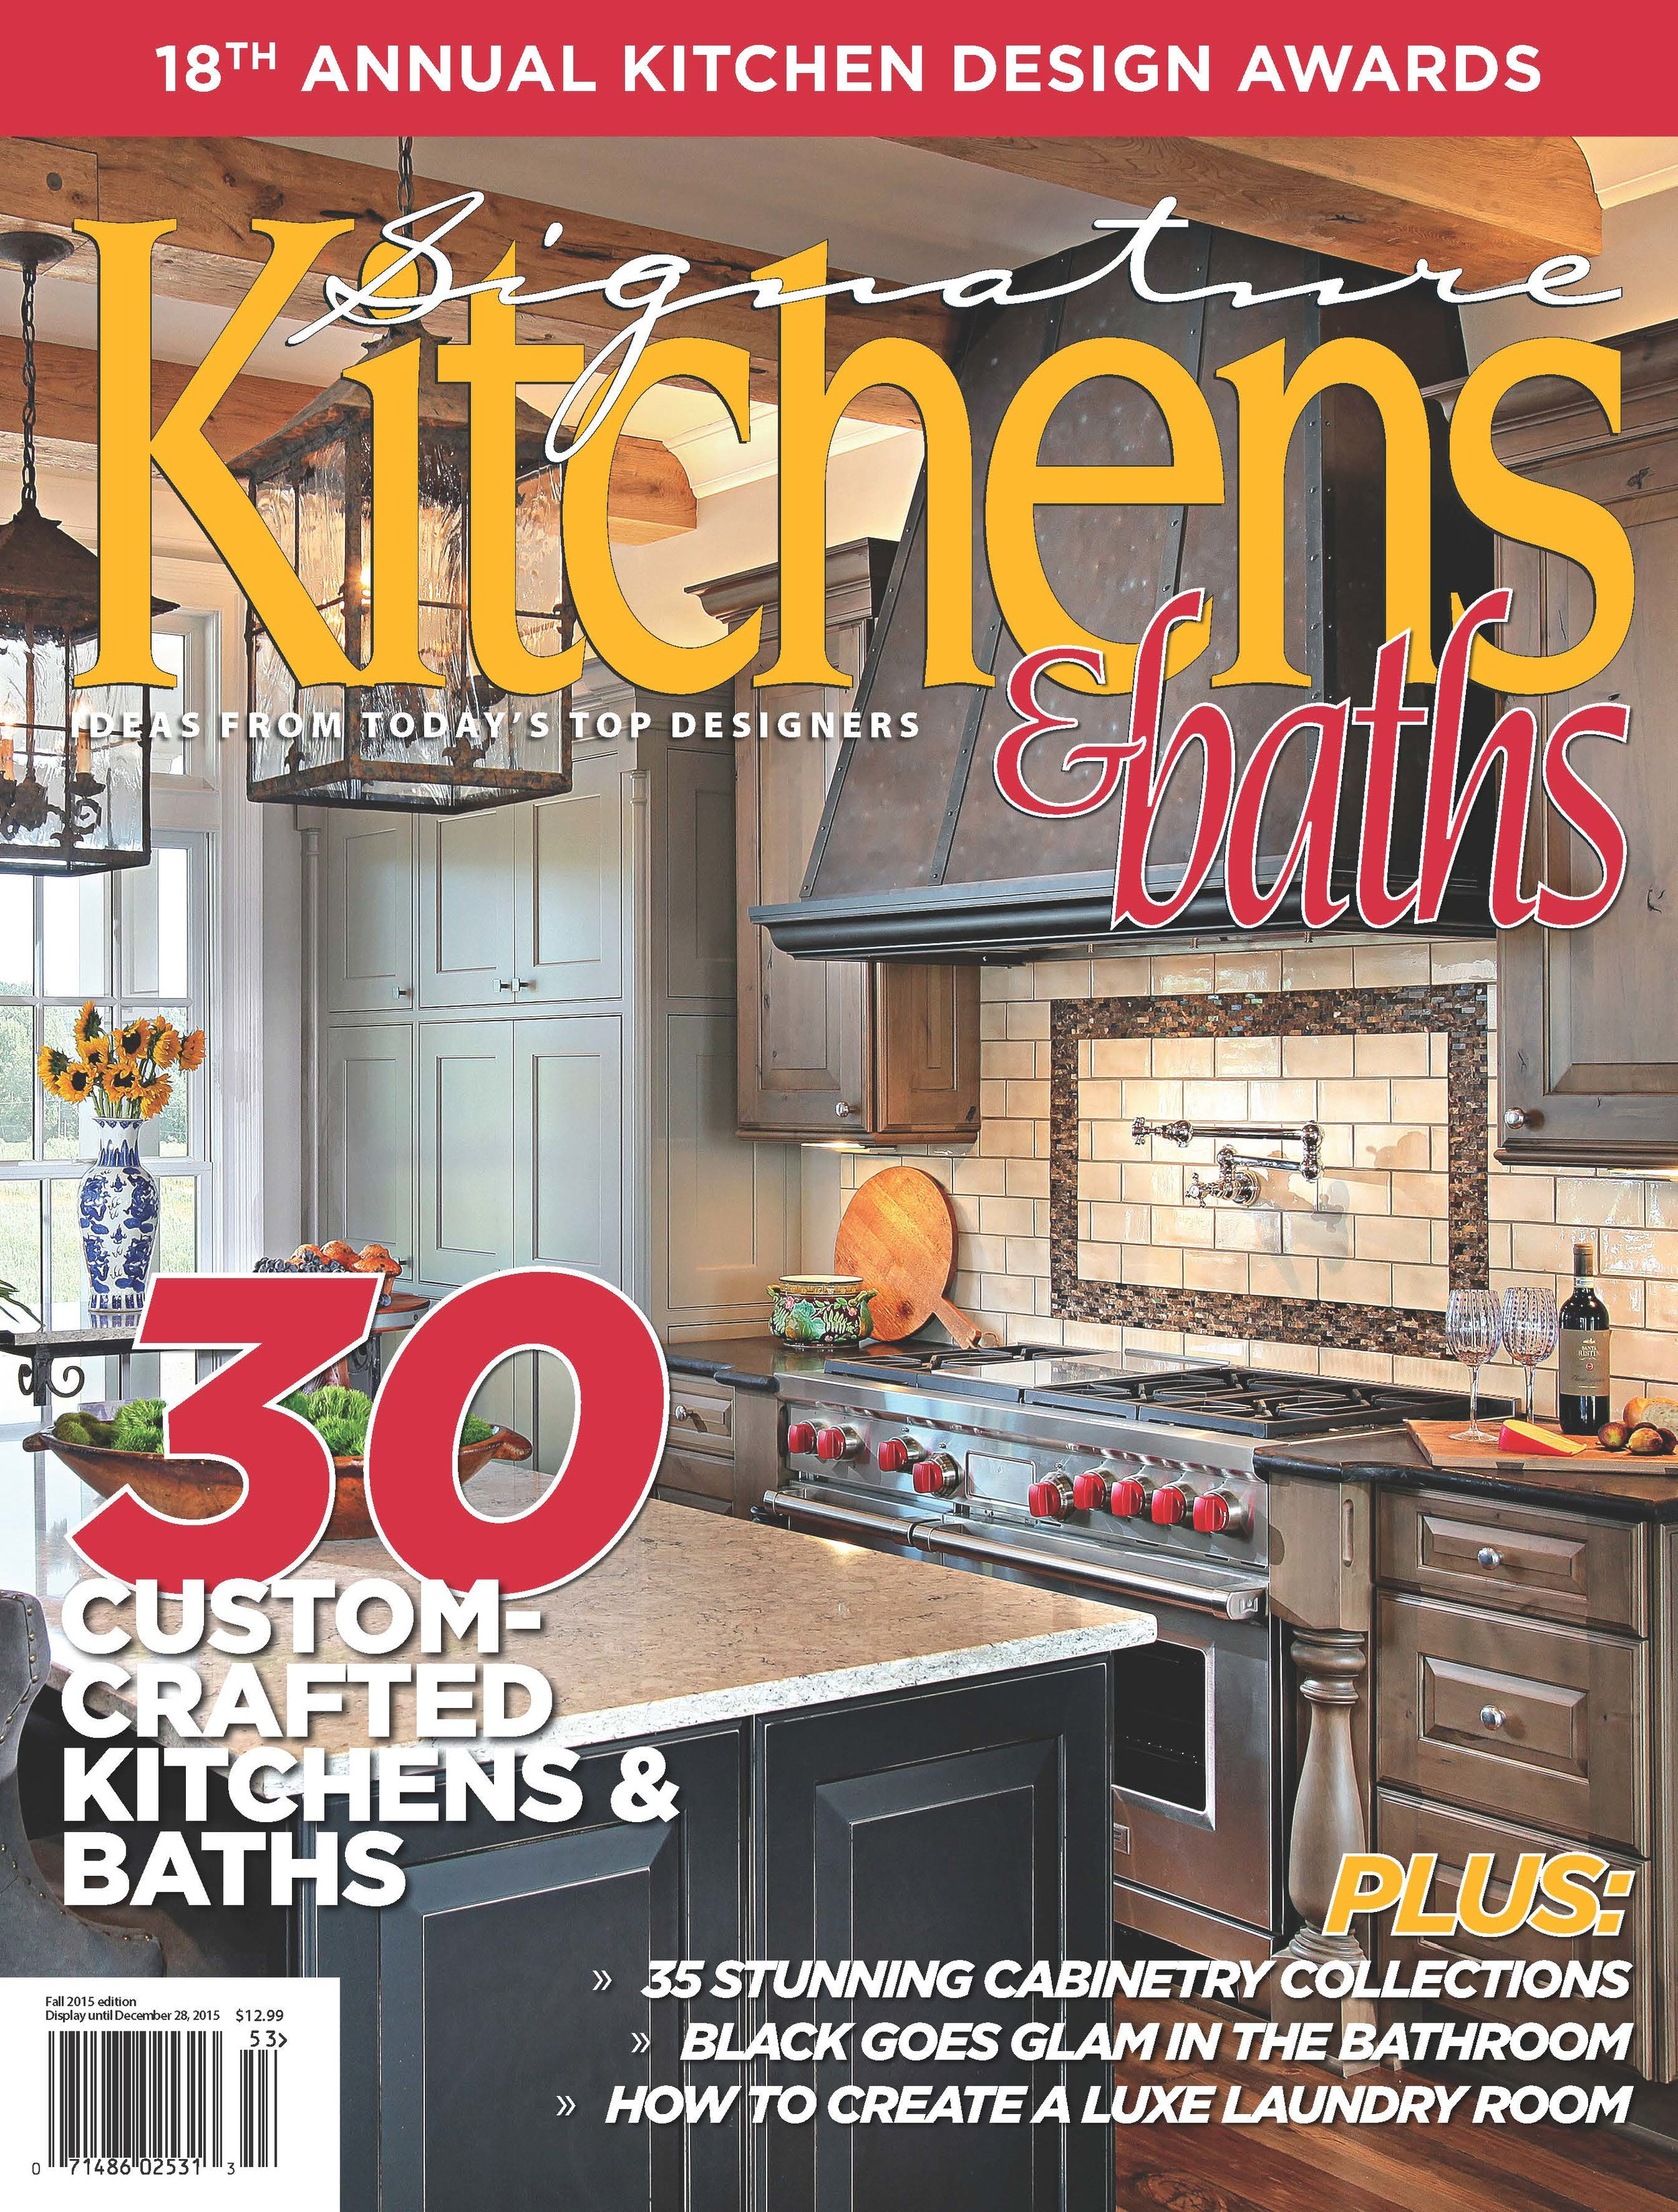 Splash Kitchens And Baths Awarded First Place In Traditional U0026 Second Place  In Contemporary Kitchens By